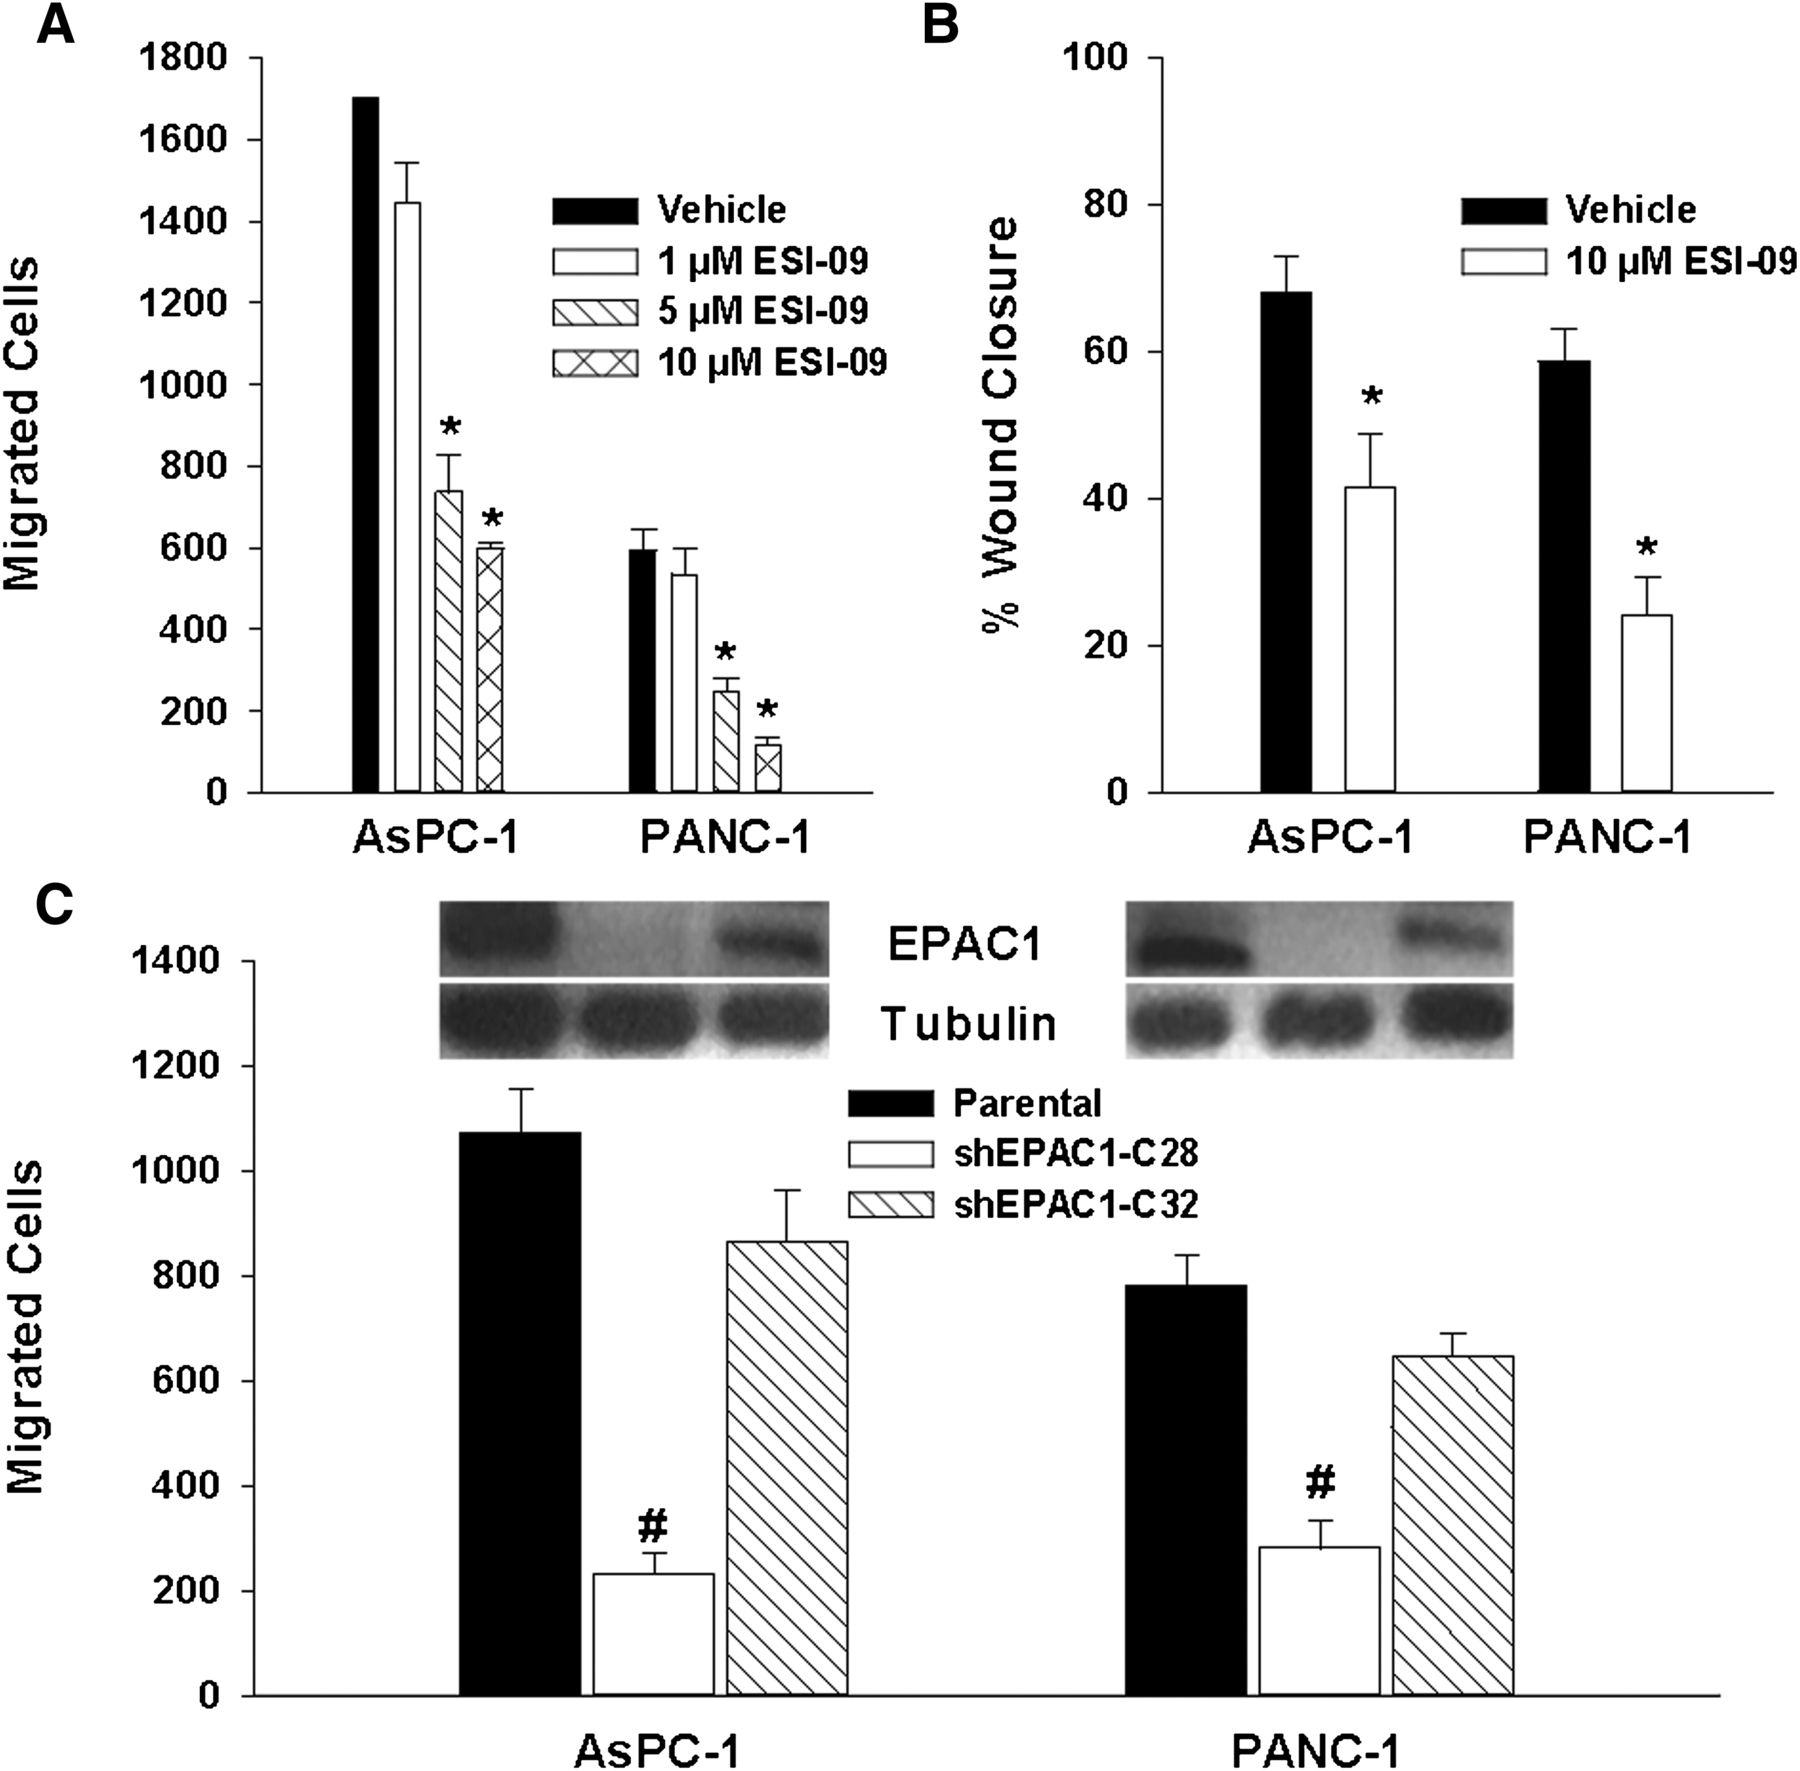 A Novel EPAC-Specific Inhibitor Suppresses Pancreatic Cancer